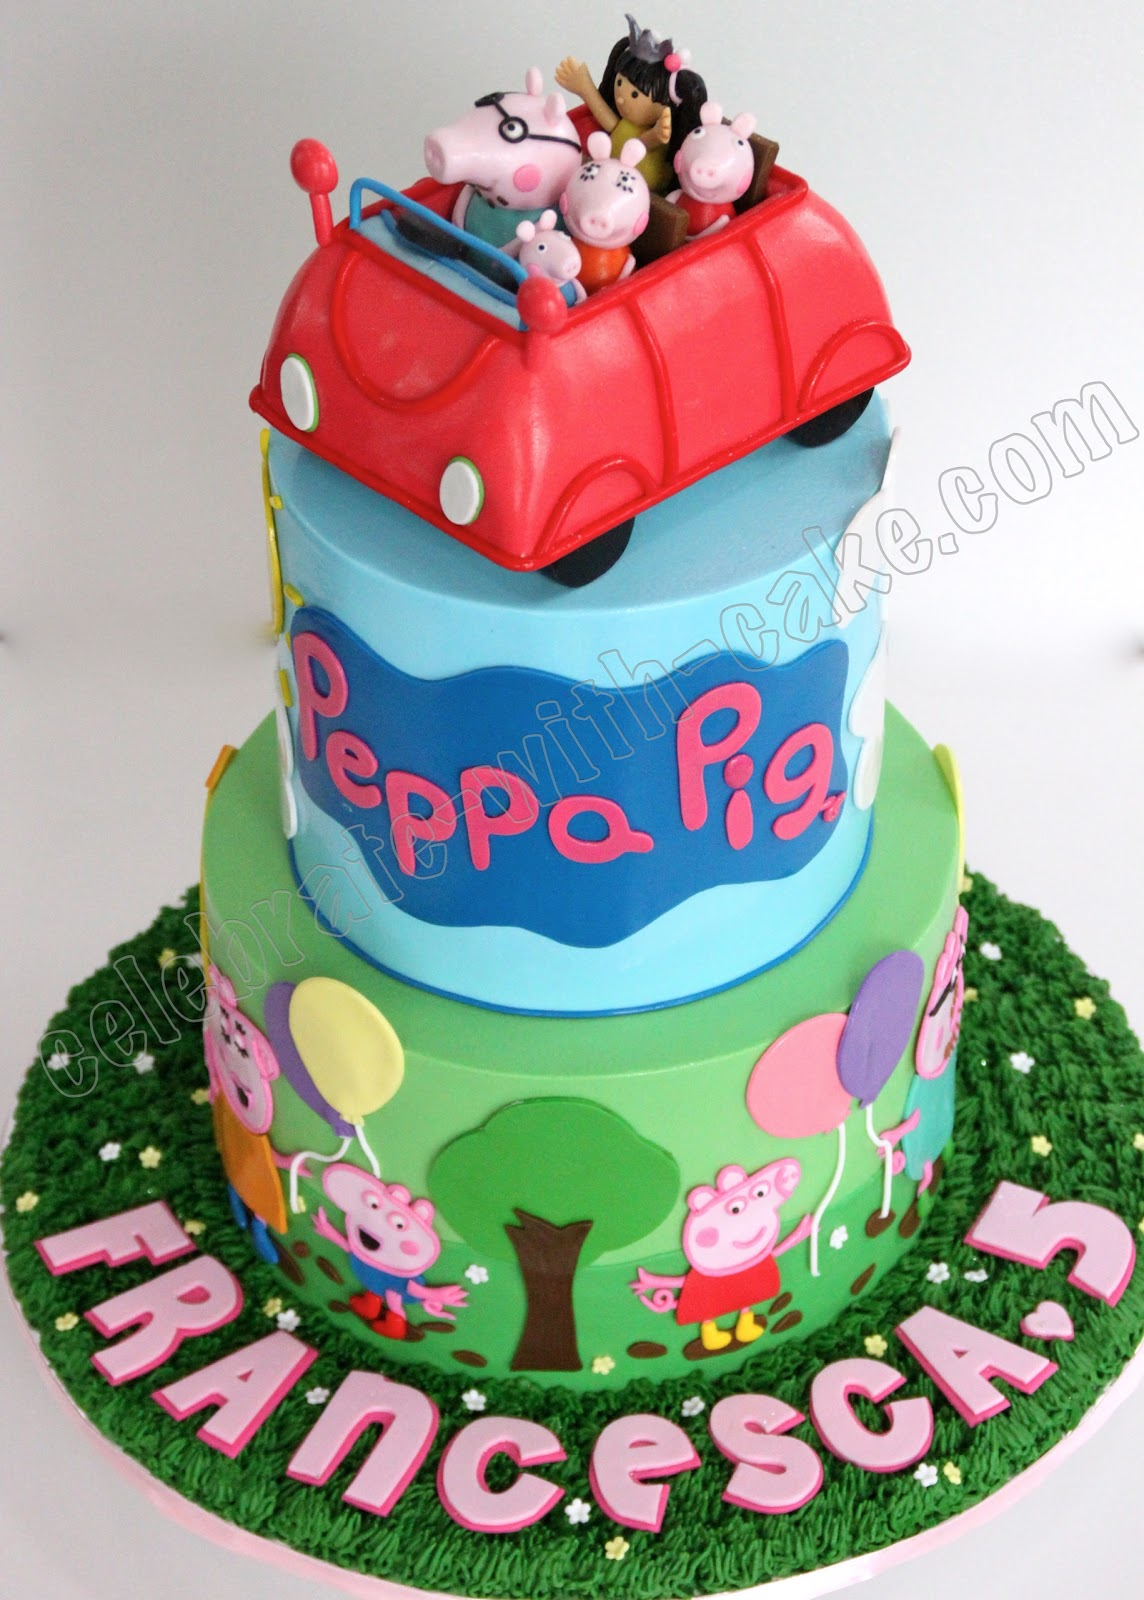 Peppa Pig Birthday Cake Singapore a Really Cute Peppa Pig Cake